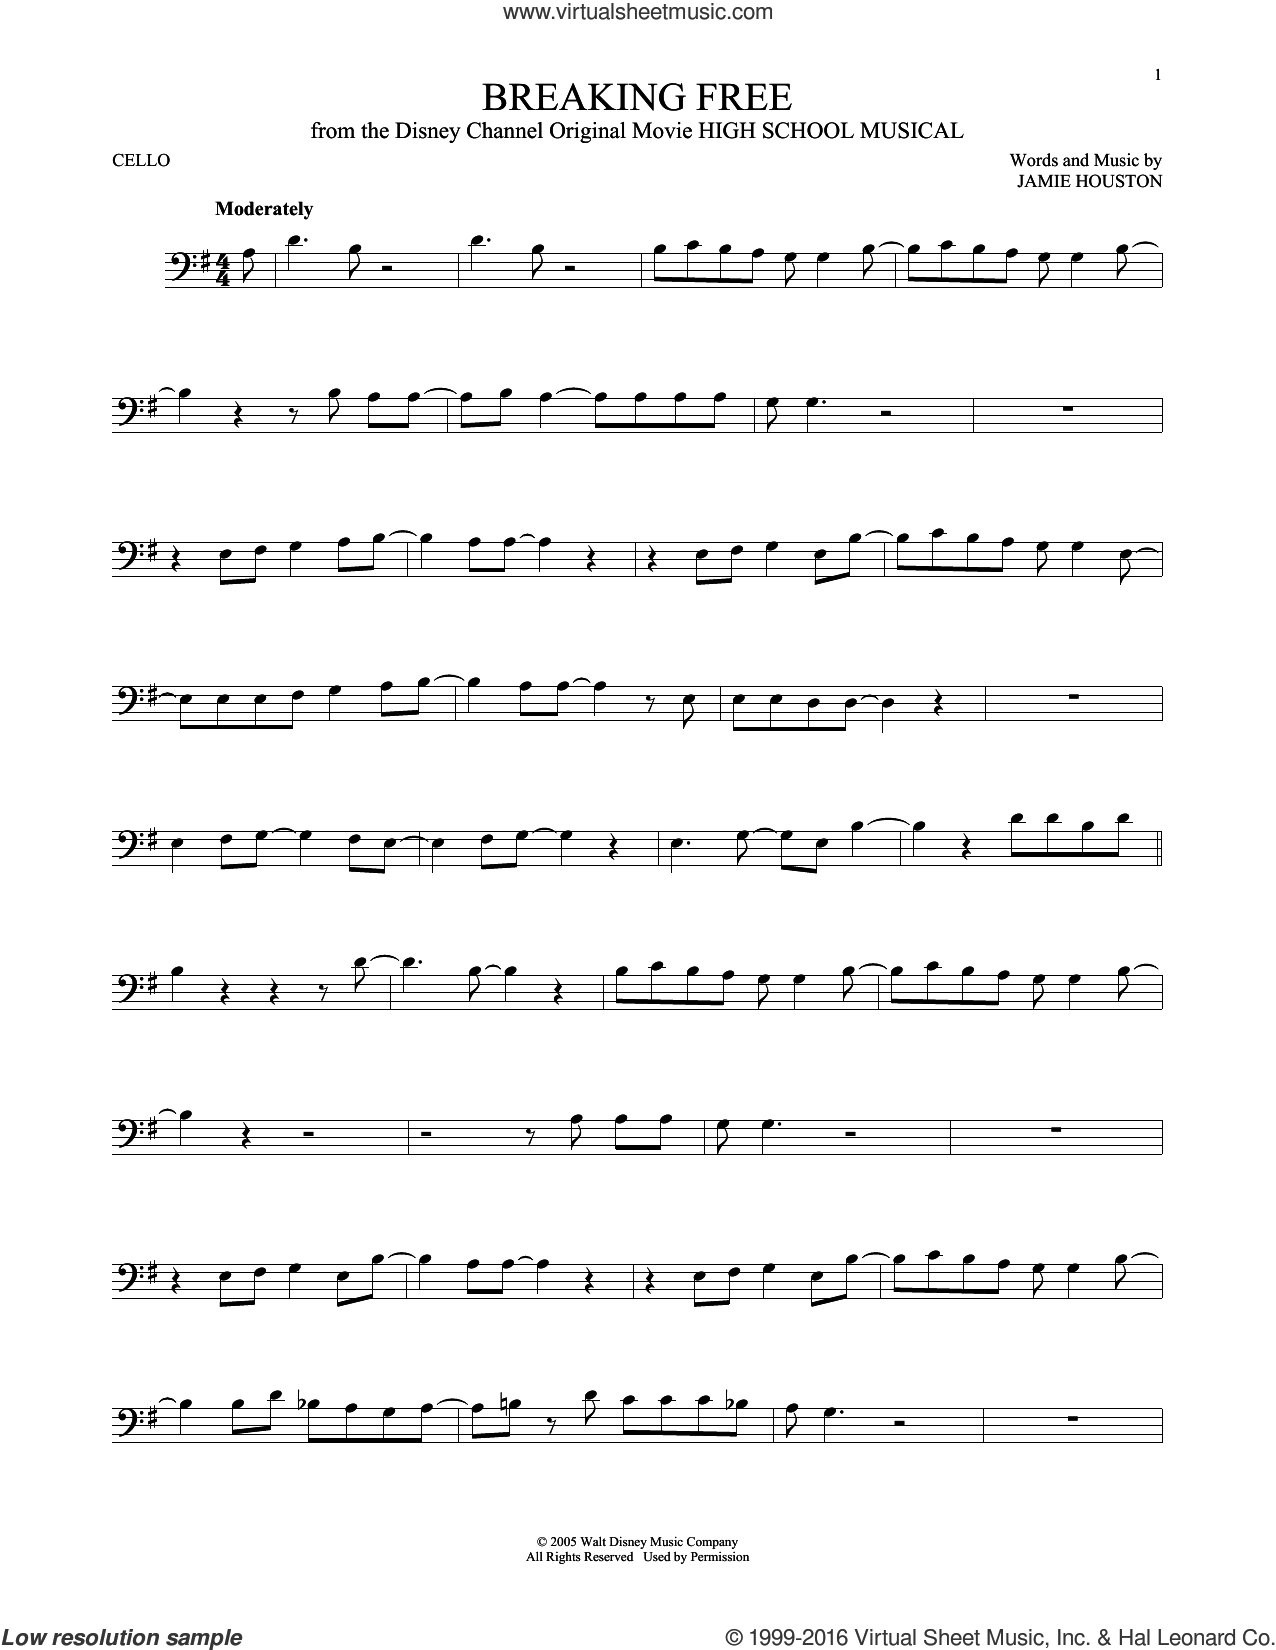 Breaking Free sheet music for cello solo by Jamie Houston